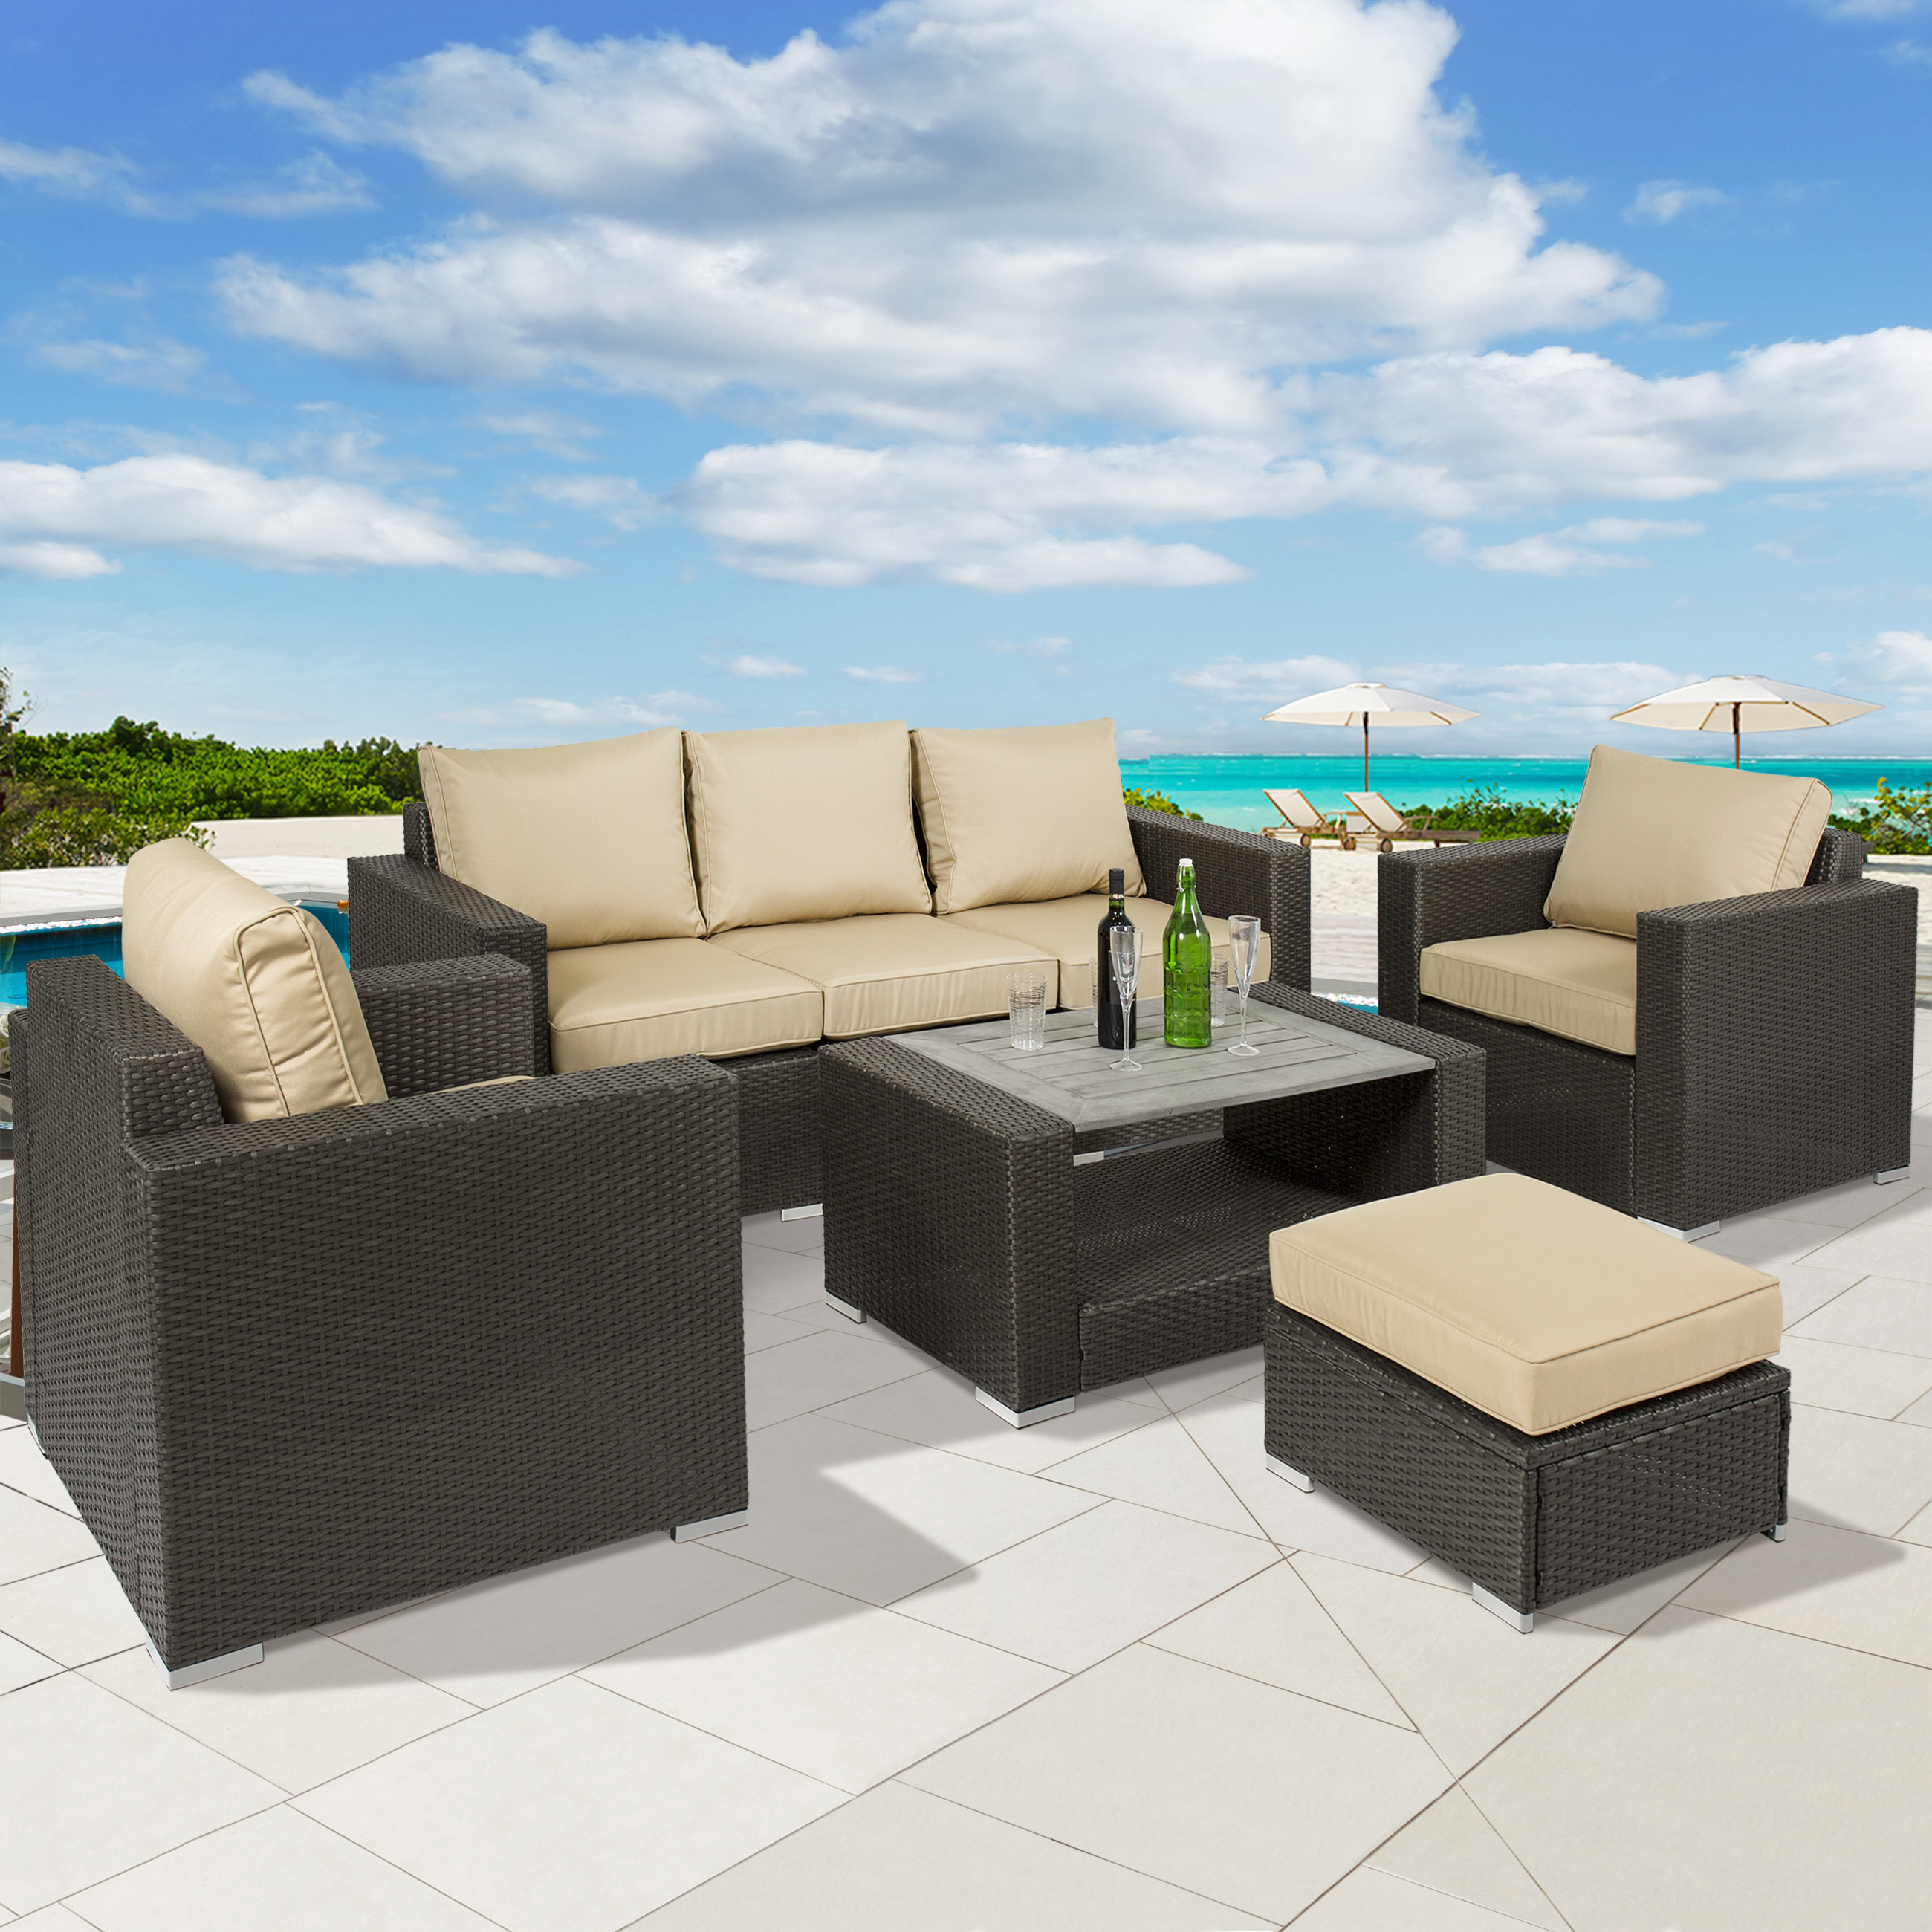 Best Choice Products 7pc Outdoor Patio Sectional PE Wicker Furniture Sofa  Set  Taupe Part 97